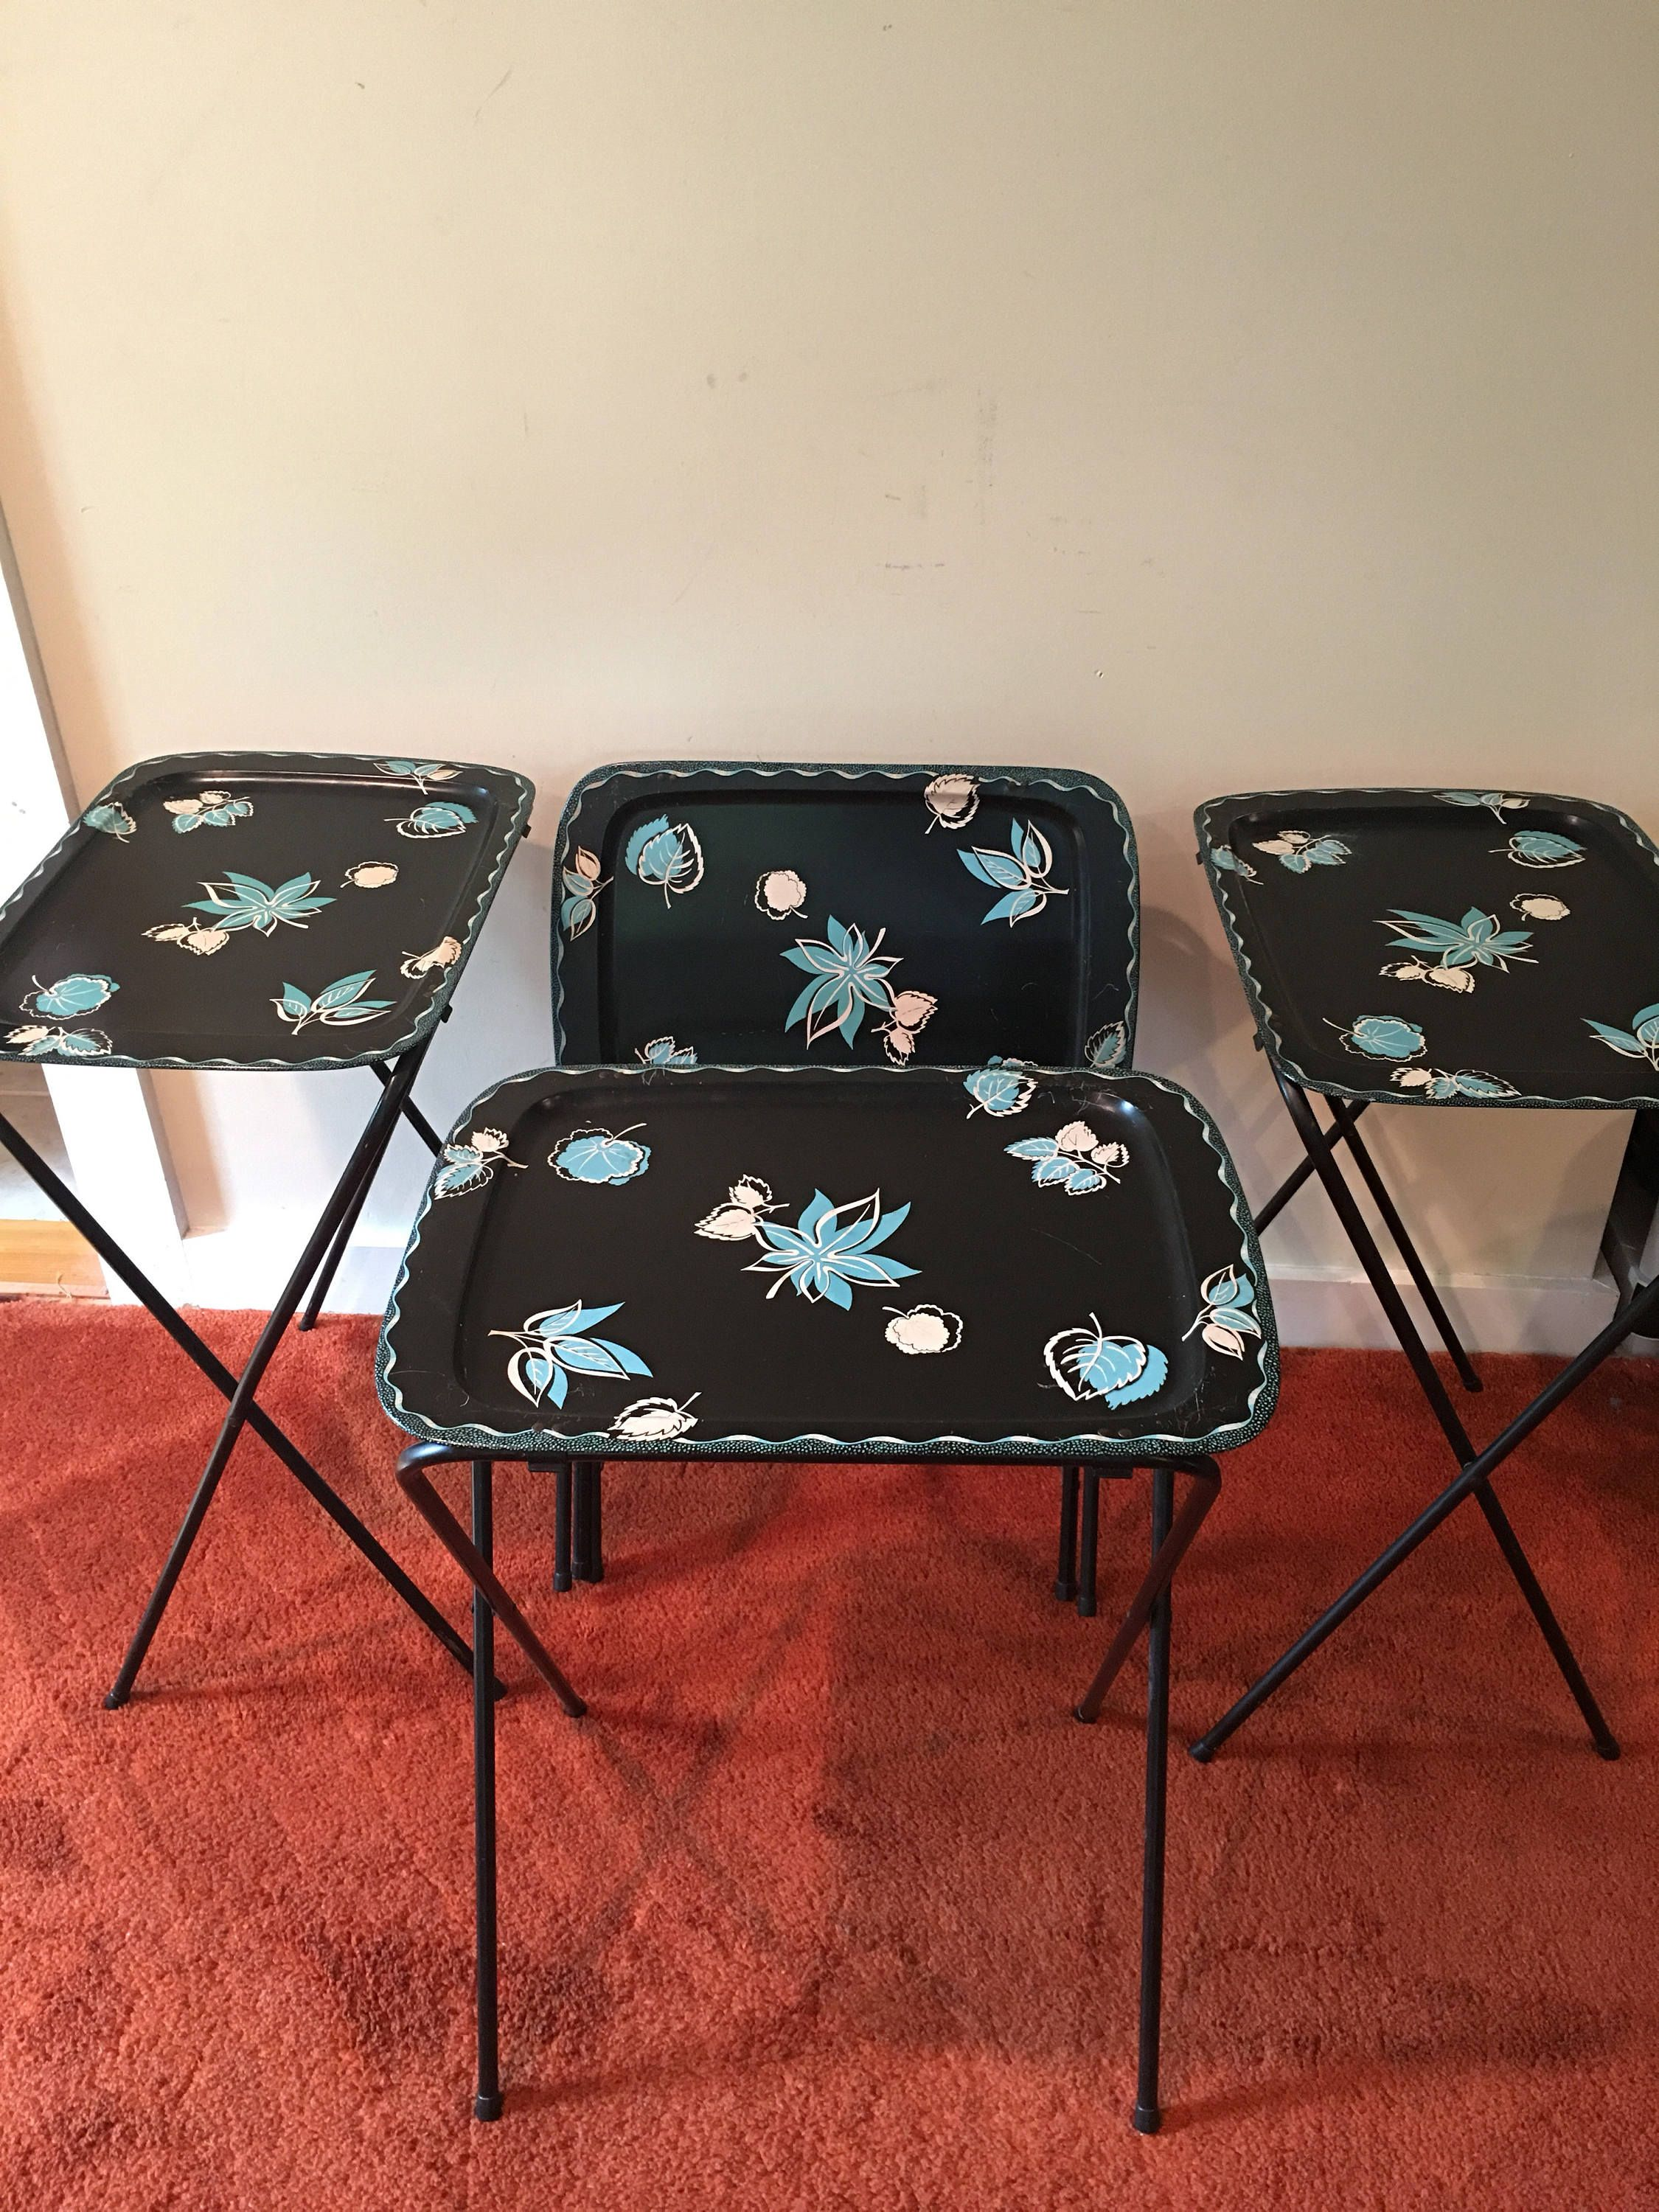 Vintage Mid Century Modern TV Tray Tables, Set Of 4, Self Contained Stand,  Folding Metal TV Trays, Black With Mod Turquoise Leaf Decoration